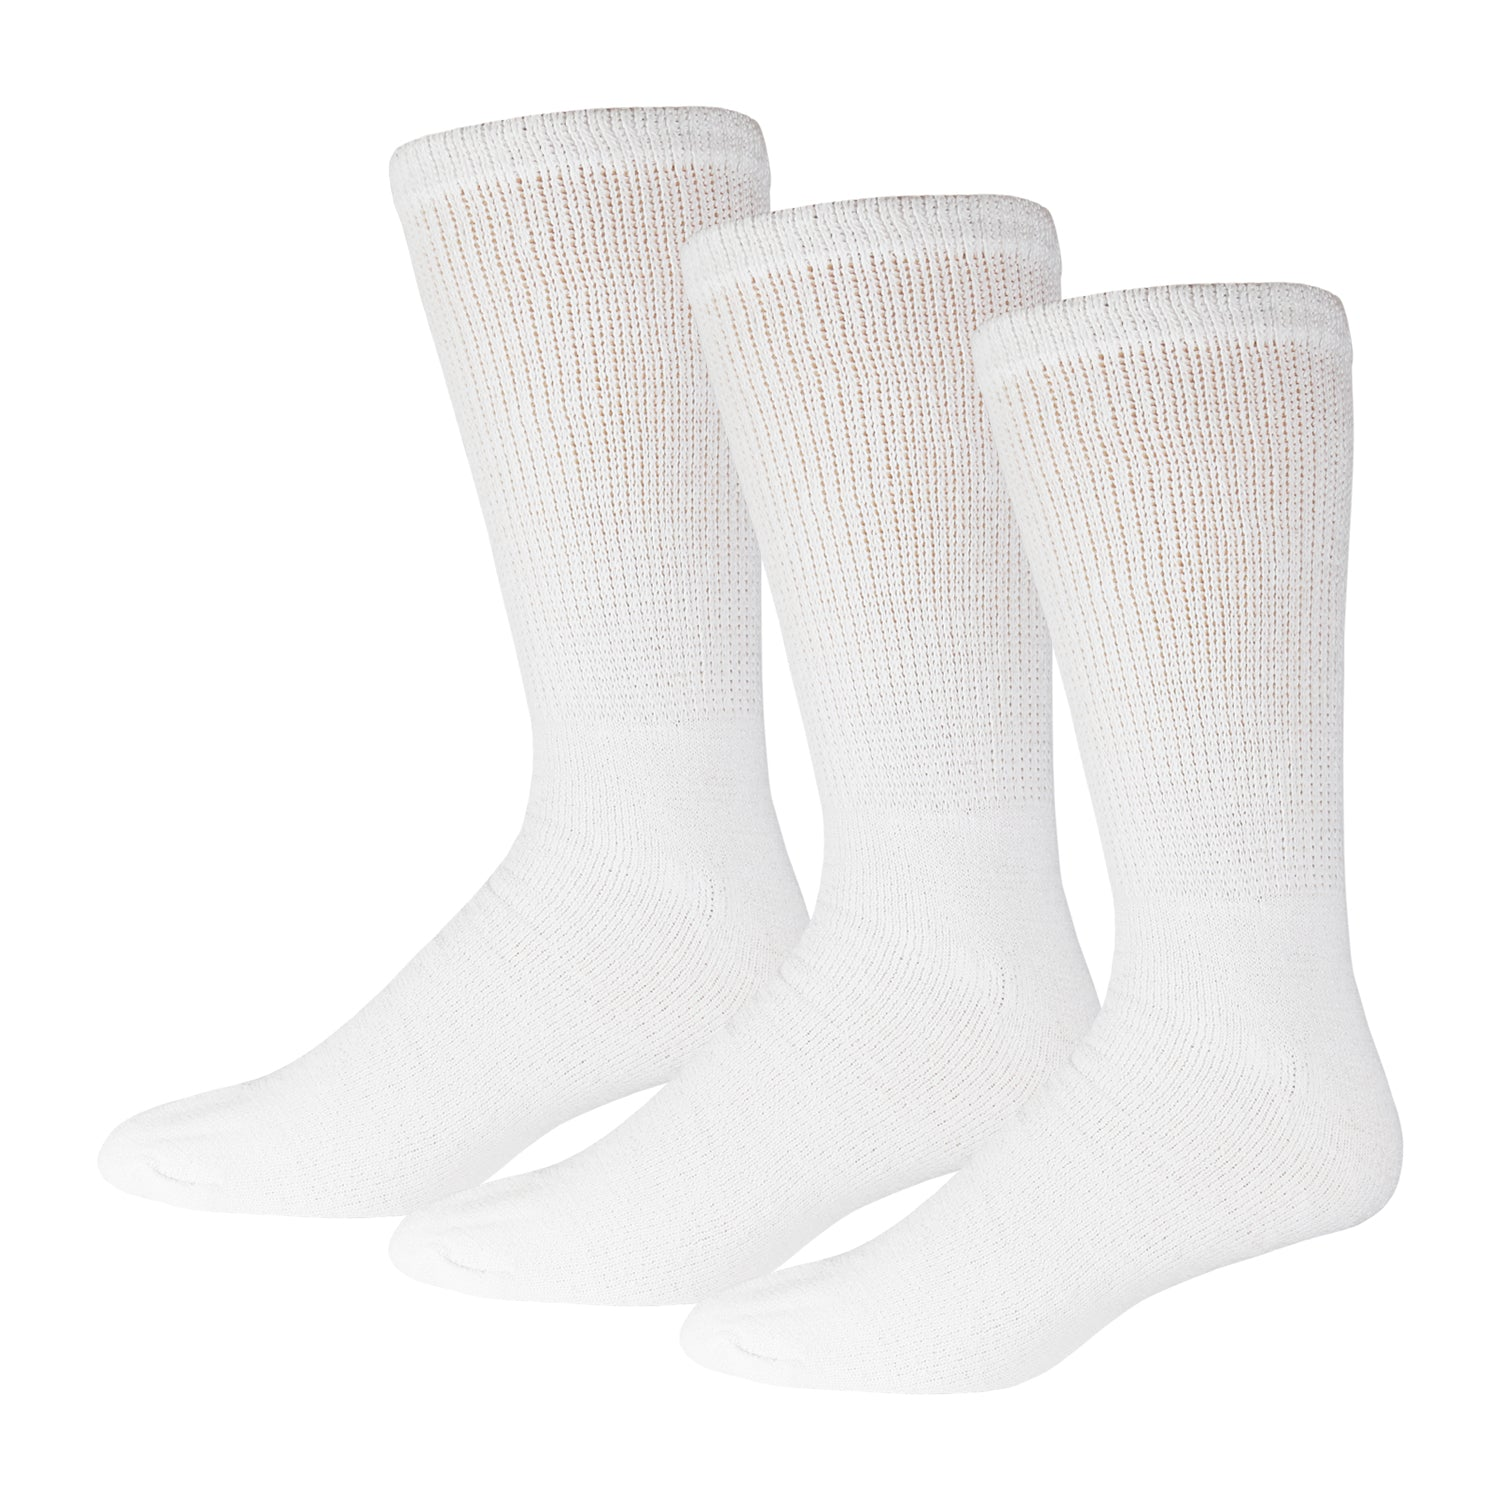 White Diabetic Socks Of Crew Length 3 Pack